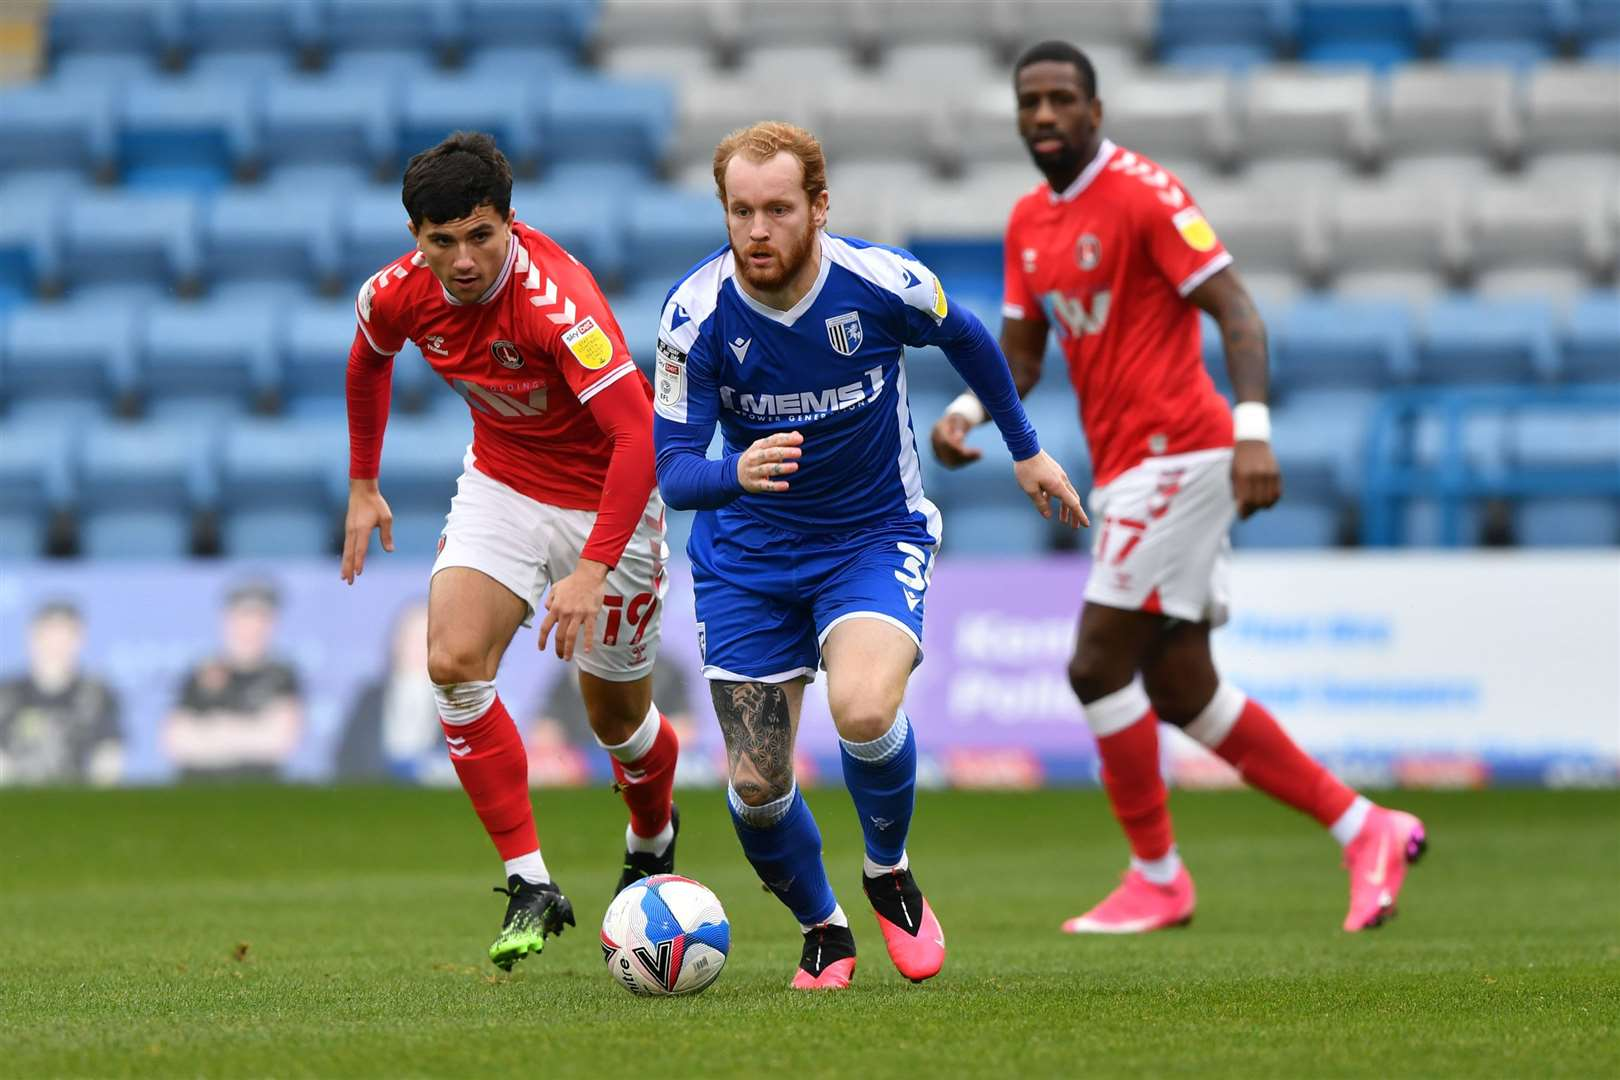 Connor Ogilvie looks to get Gillingham moving forward Picture: Keith Gillard